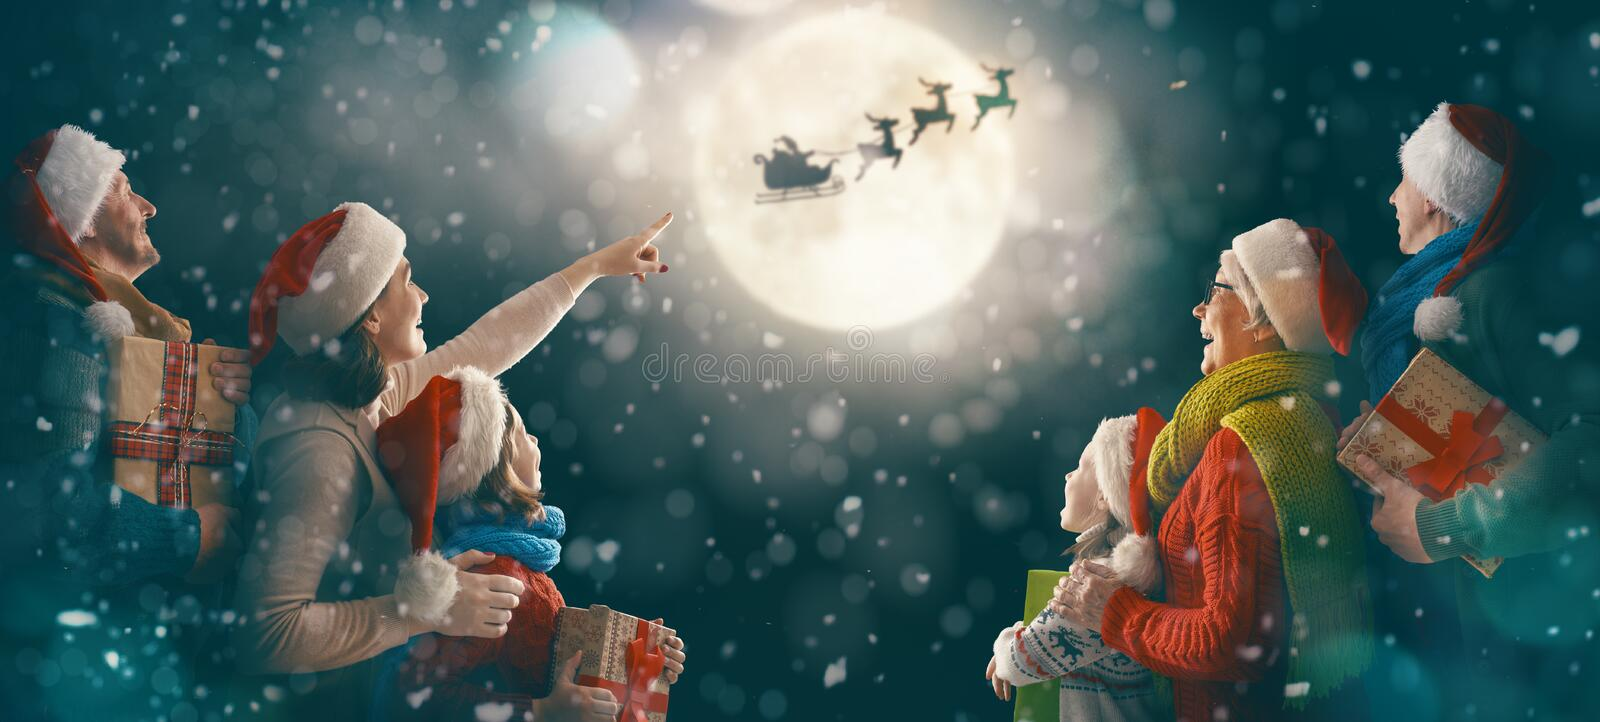 Family enjoying Christmas royalty free stock image